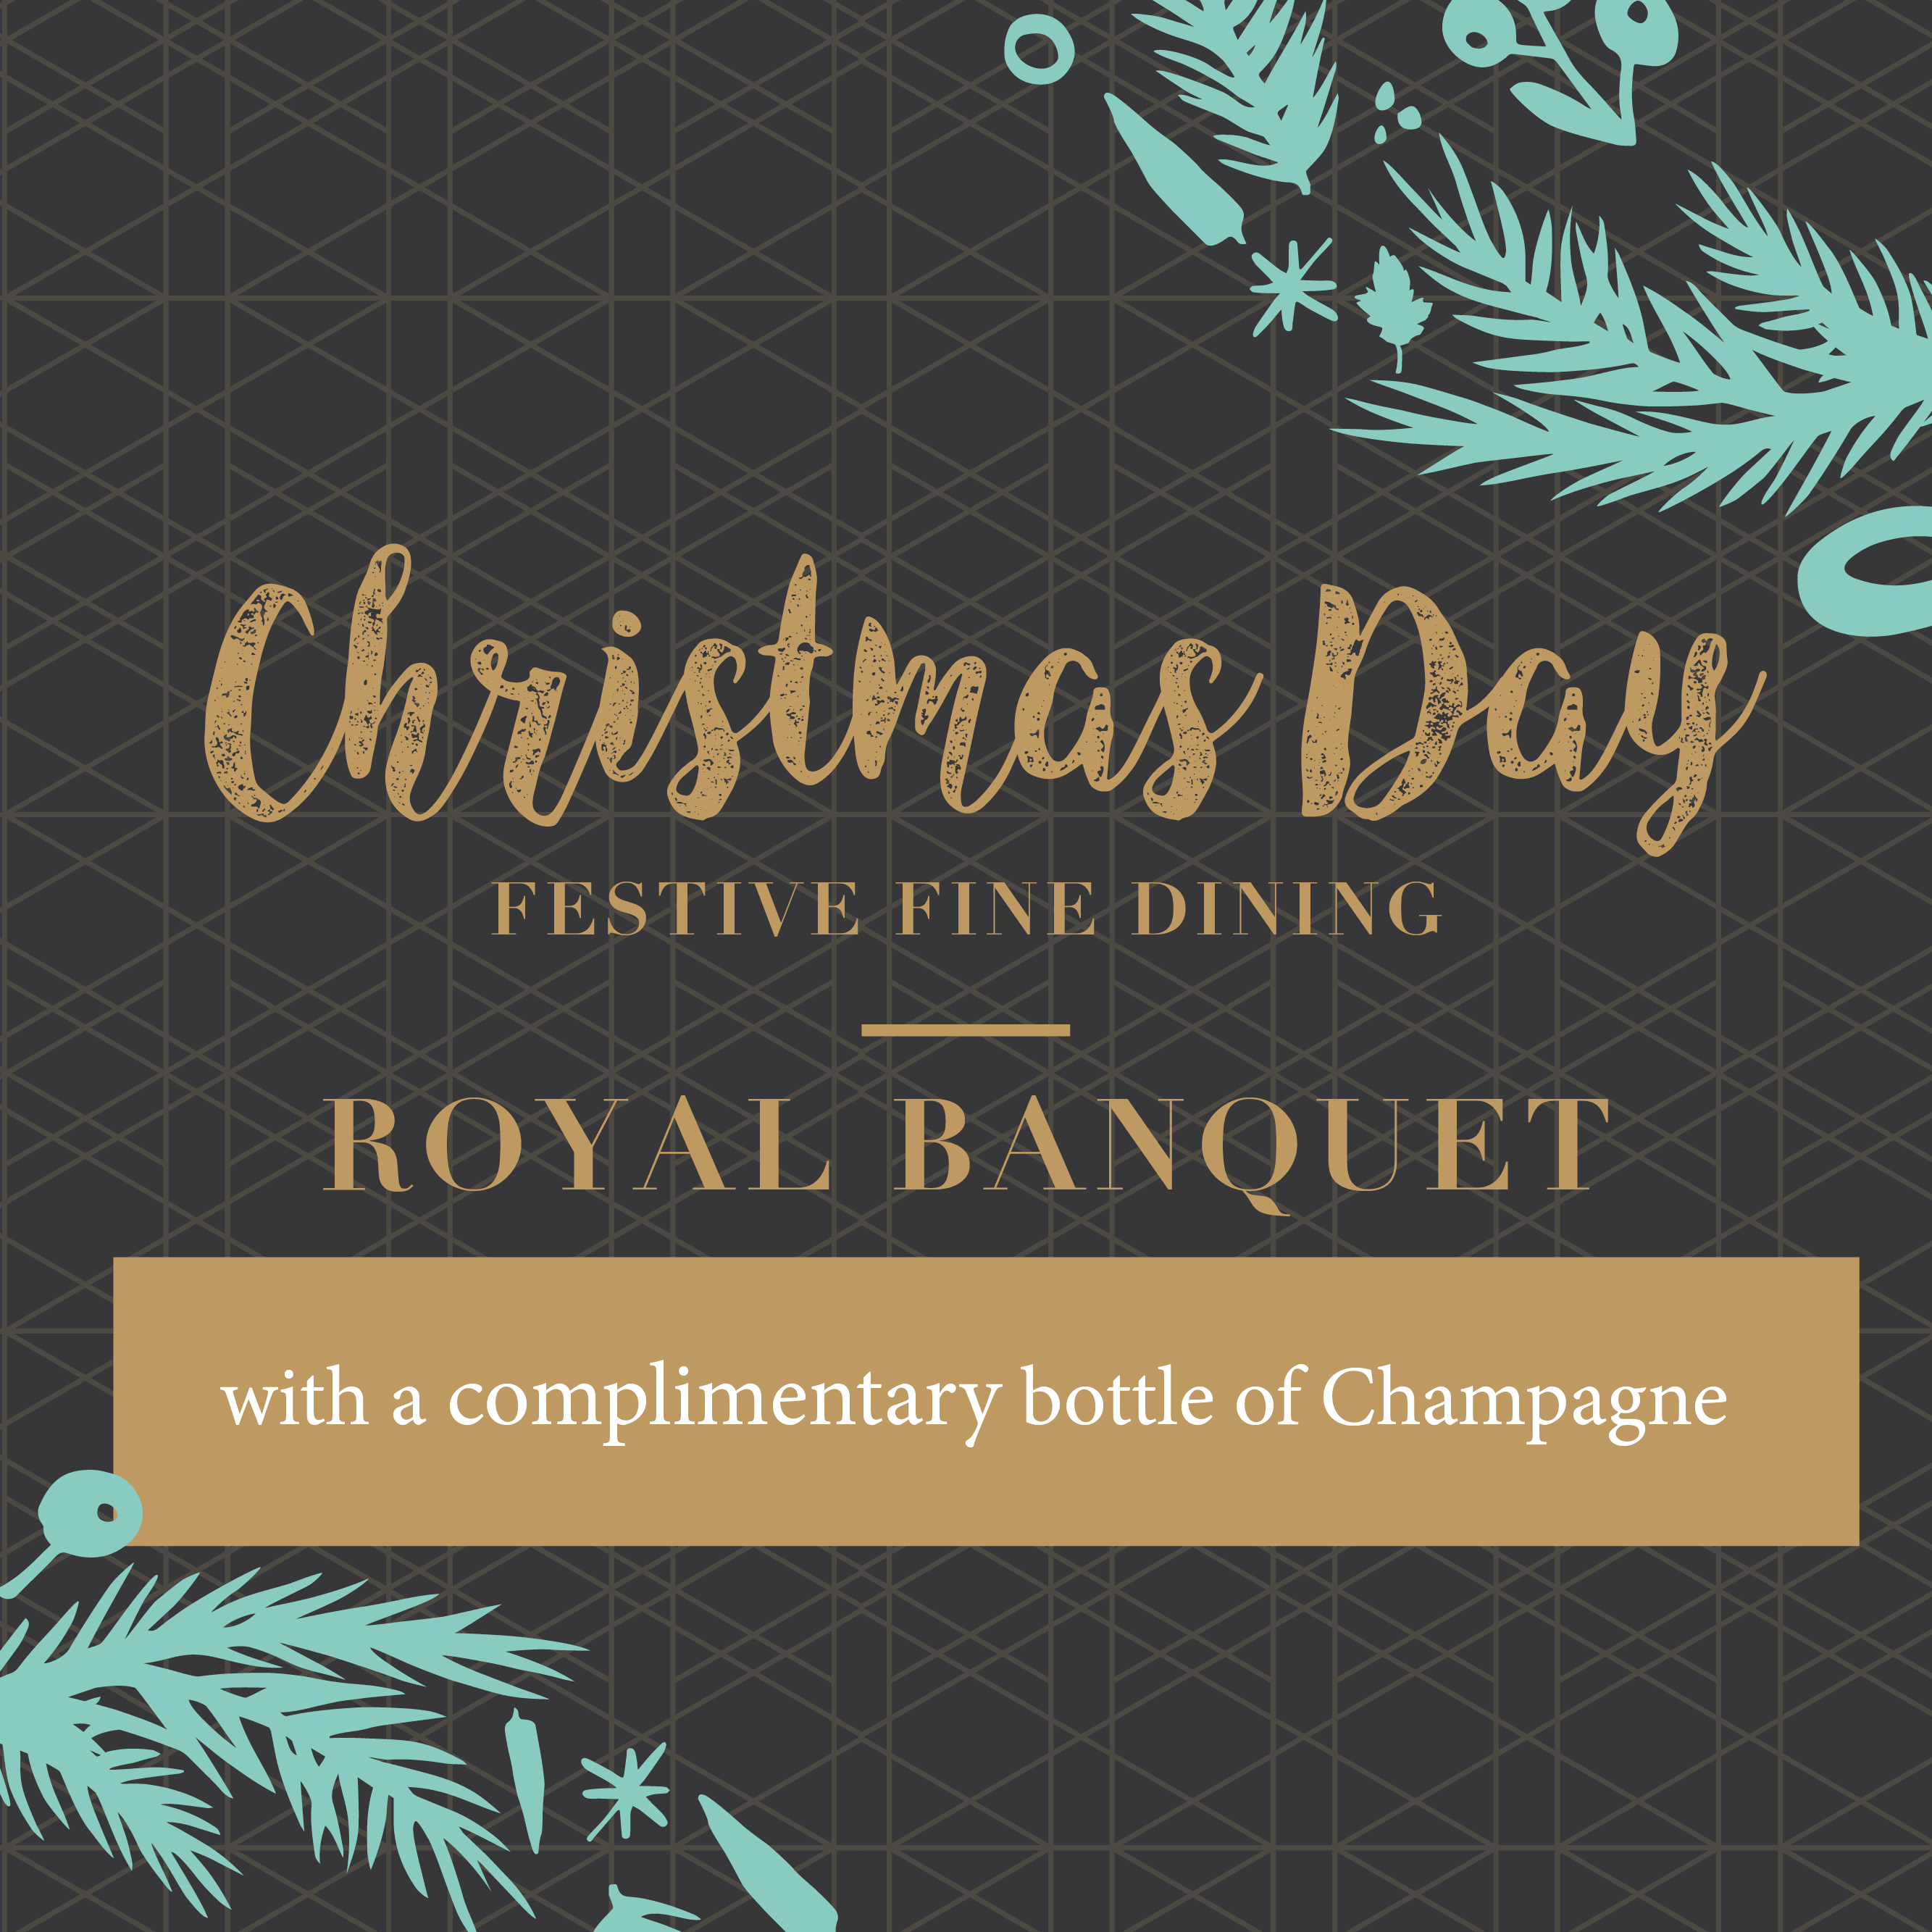 Christmas Day Banquet – Complimentary Champagne